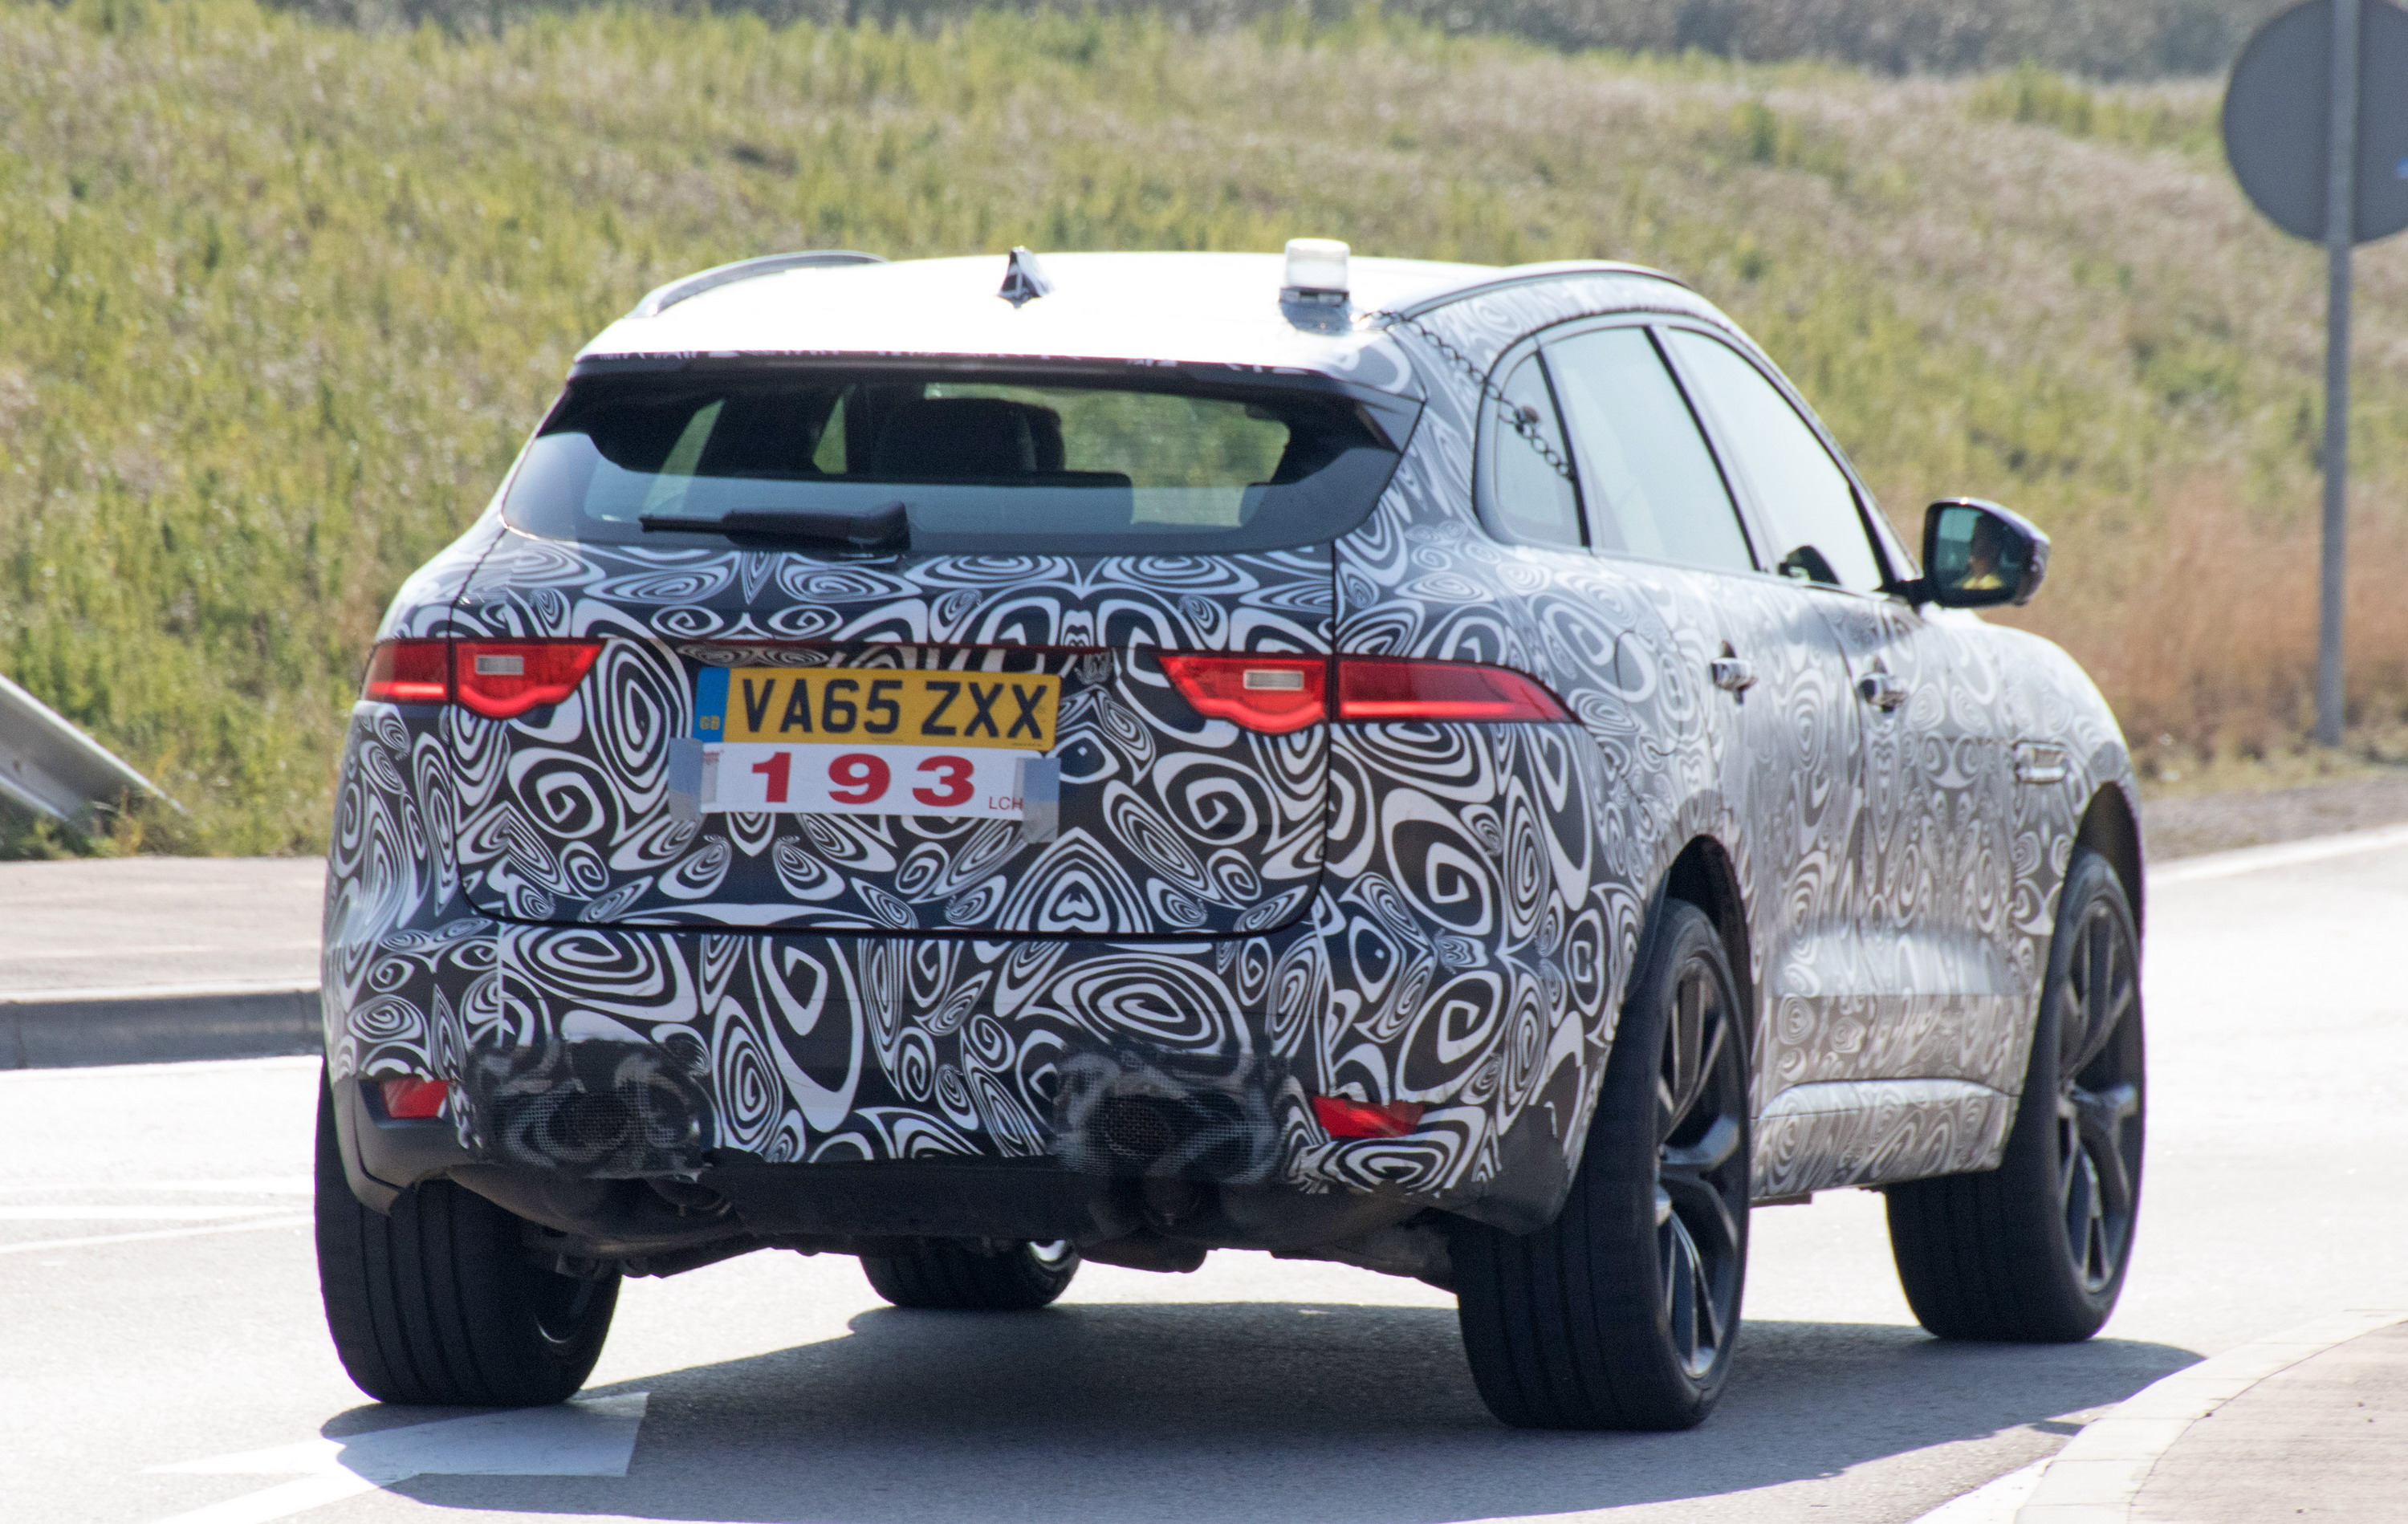 by loop location mocks f last fpace unveiling gravity new suv during pulling year s show strength defying at jag driving pace despite frankfurt jaguar off motor exhibits its into rogue image portfolio stopping death stunt degree a